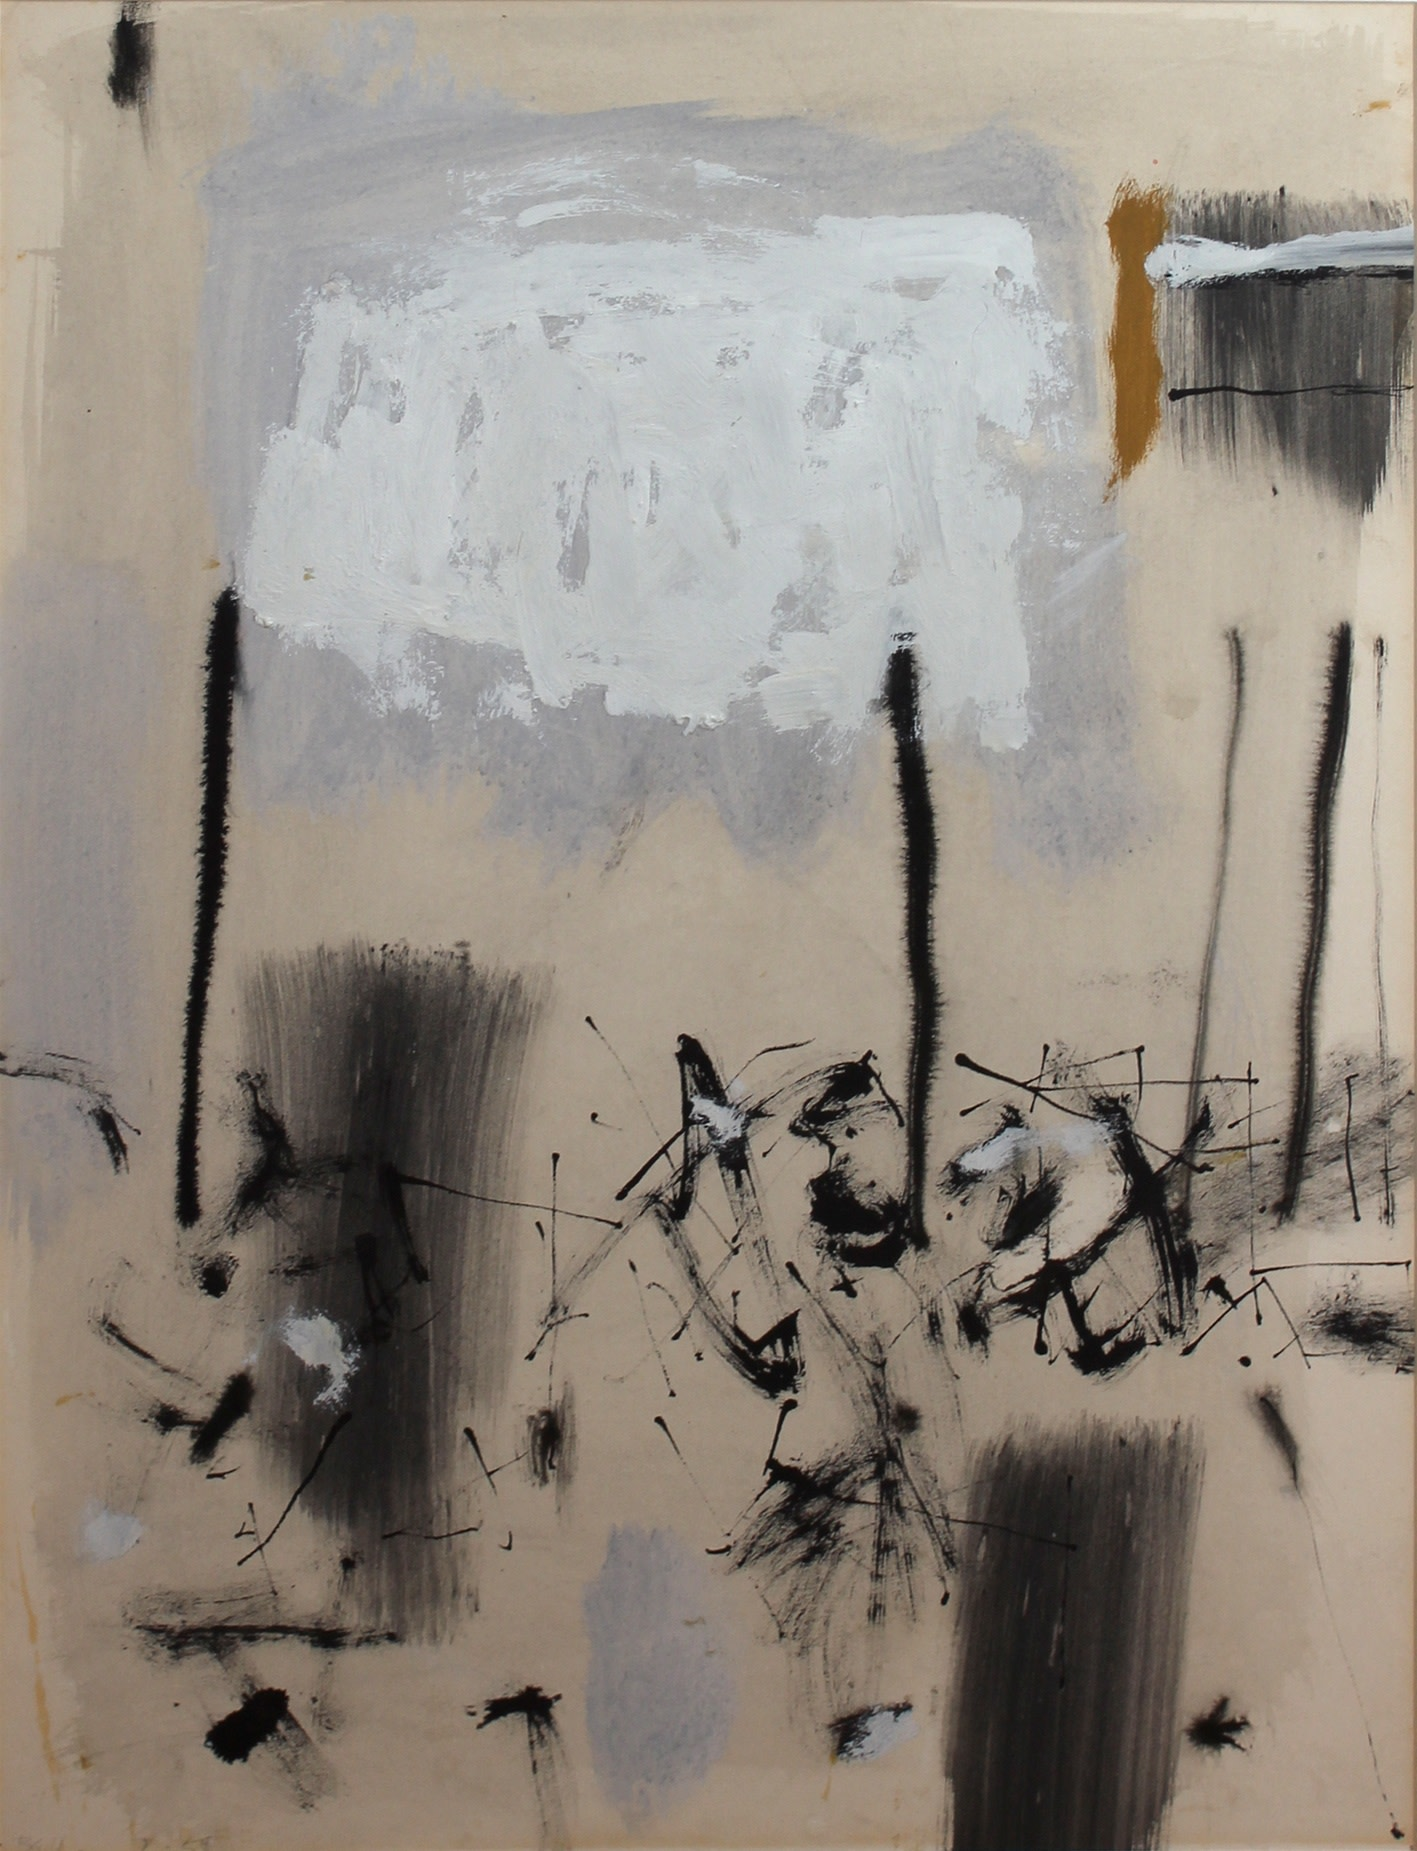 """<span class=""""link fancybox-details-link""""><a href=""""/artists/82-trevor-bell-ra/works/295-trevor-bell-ra-untitled-abstract-1959/"""">View Detail Page</a></span><div class=""""artist""""><strong>Trevor Bell RA</strong></div> 1930– <div class=""""title""""><em>Untitled Abstract</em>, 1959</div> <div class=""""signed_and_dated"""">Trevor Bell</div> <div class=""""medium"""">pencil, charcoal, ink and gouache on paper</div> <div class=""""dimensions"""">44 x 34 cm</div><div class=""""copyright_line"""">© The Artist</div>"""